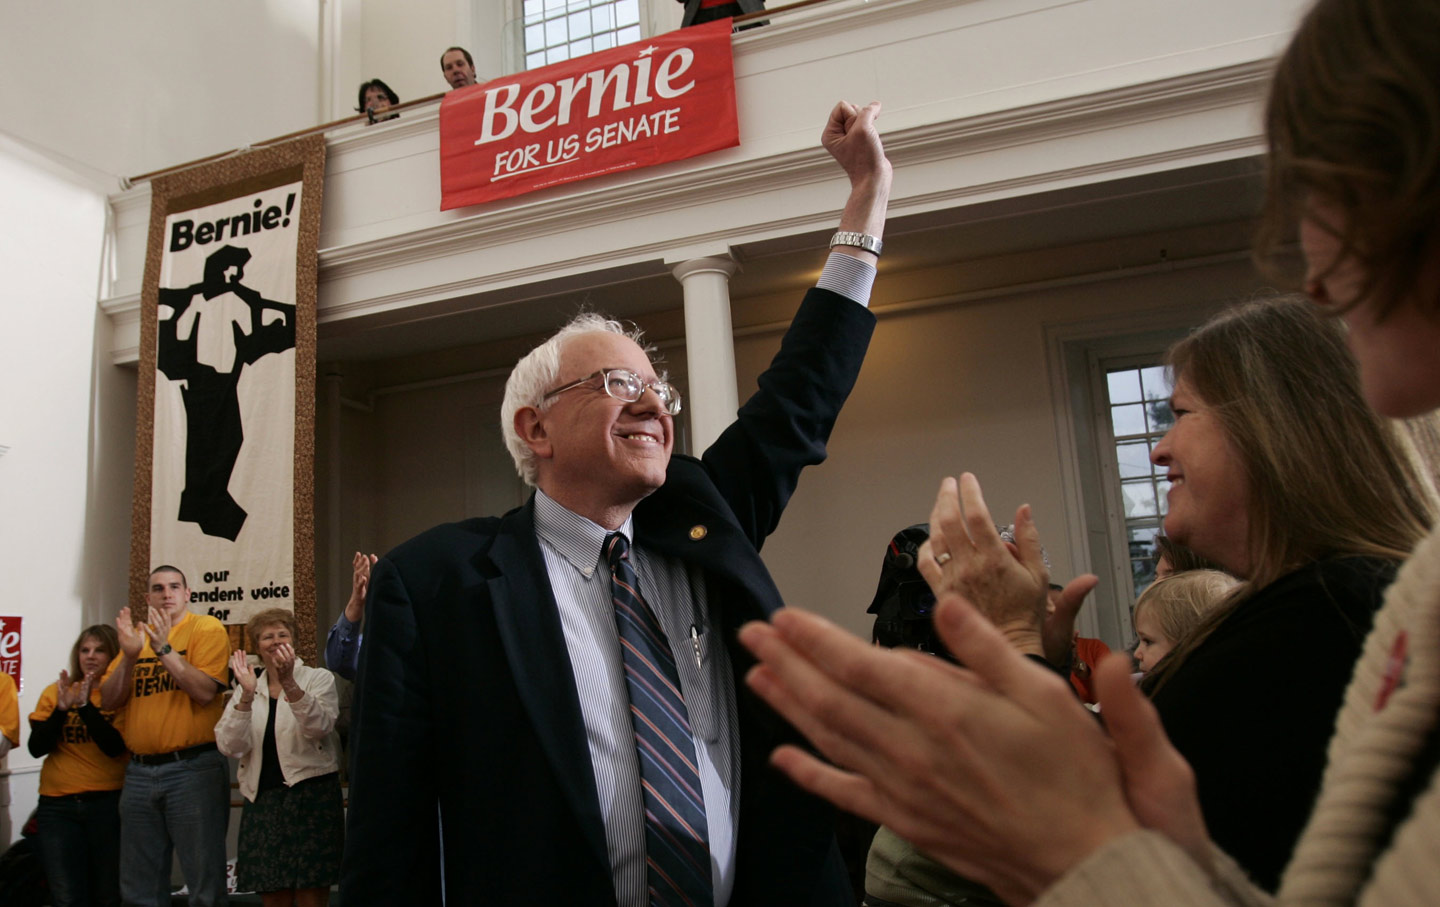 Bernie Sanders announces his candidacy for Senate in 2006.